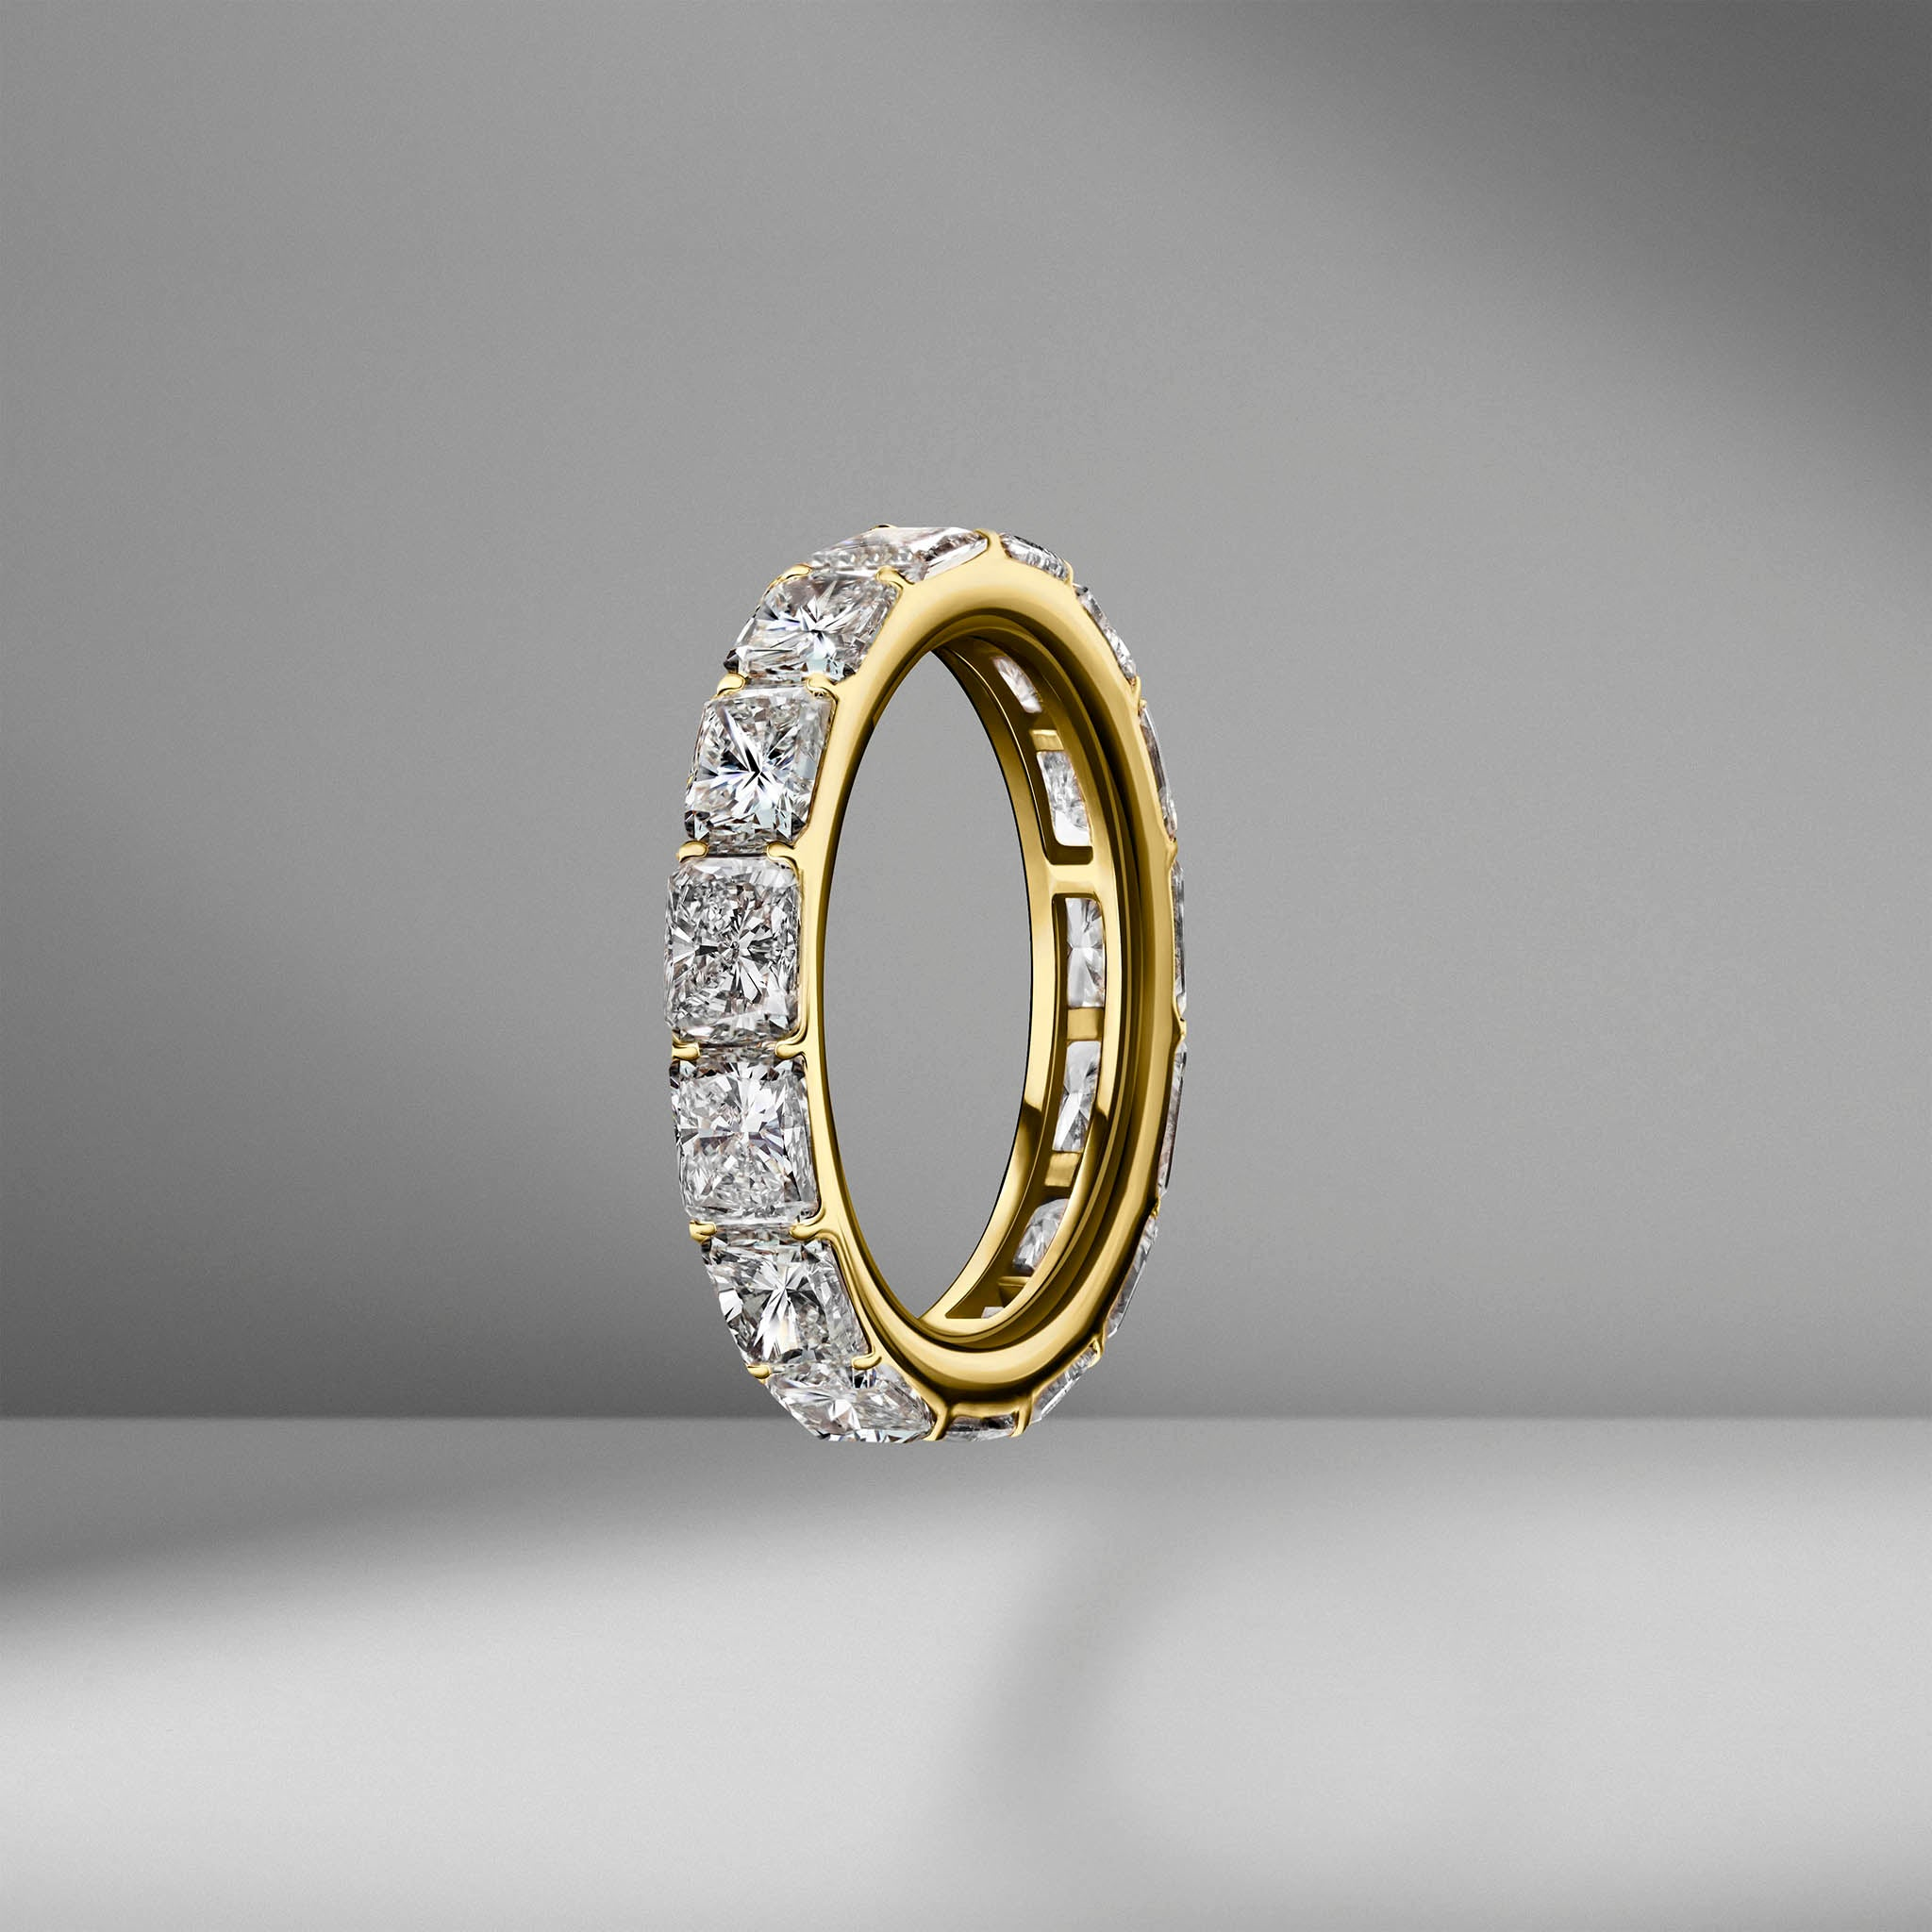 East-West Set Radiant Cut Eternity Band .30